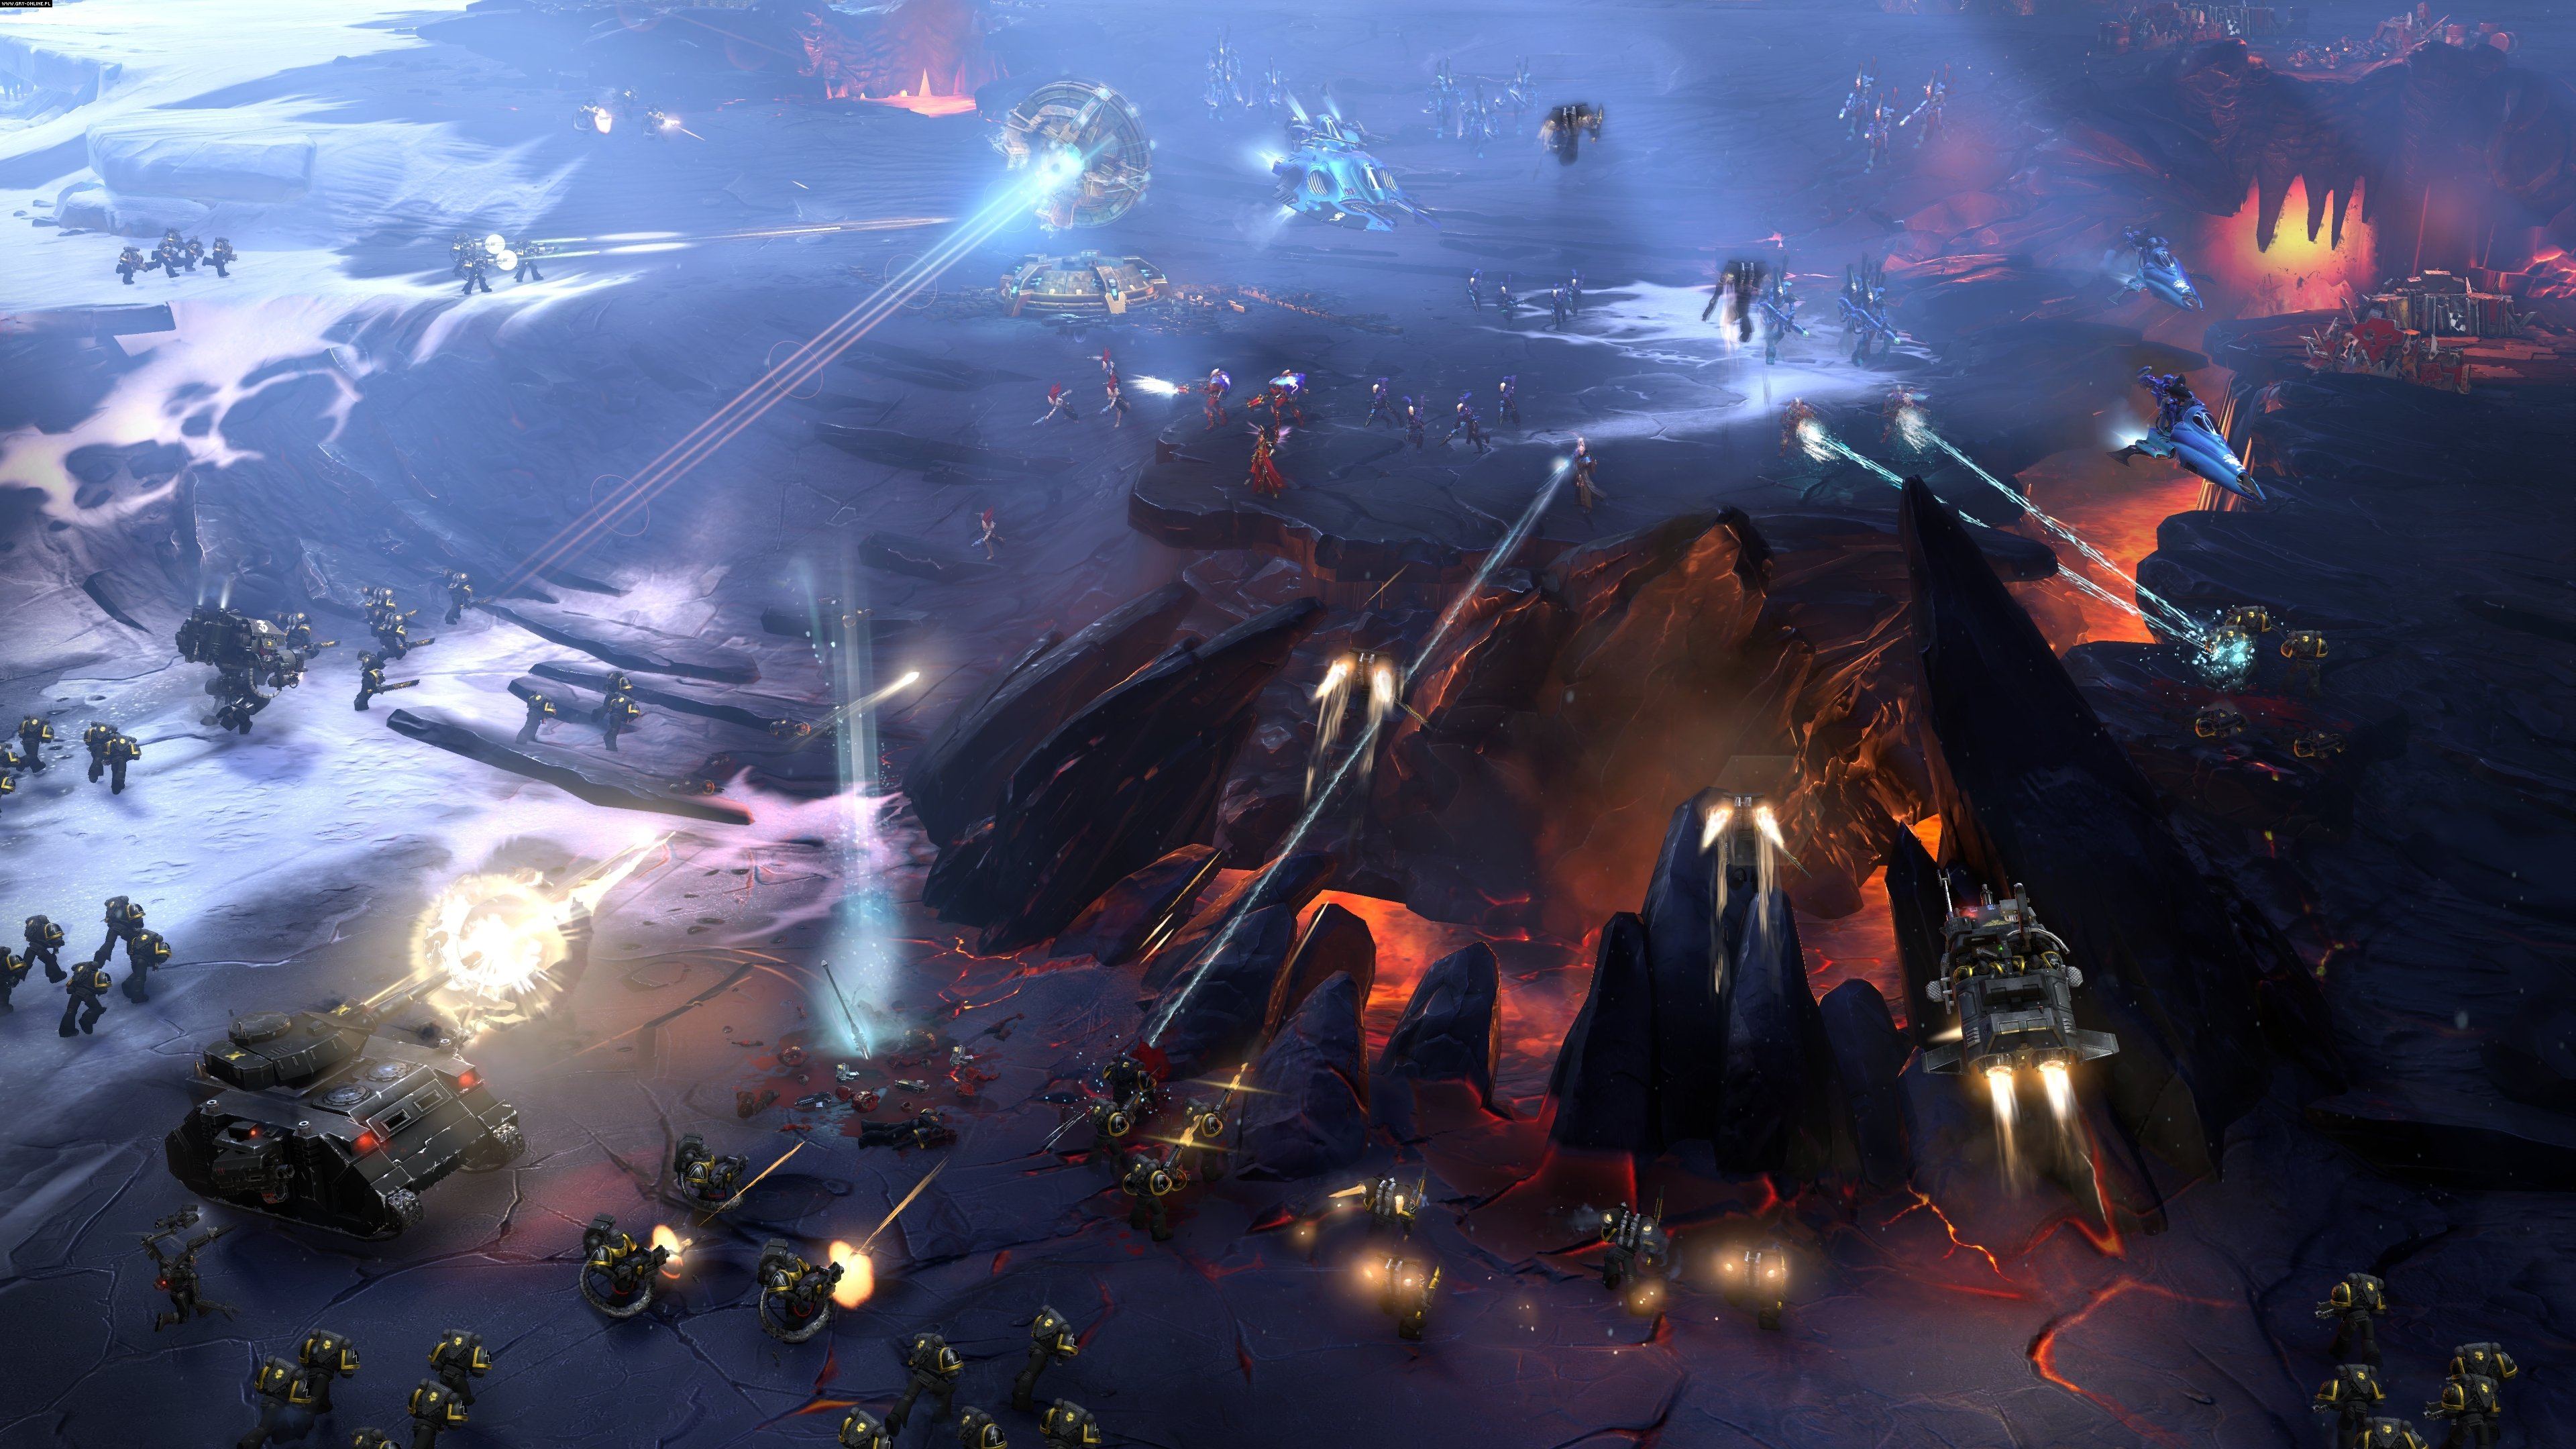 Warhammer 40,000: Dawn of War III PC Gry Screen 4/32, Relic Entertainment, SEGA